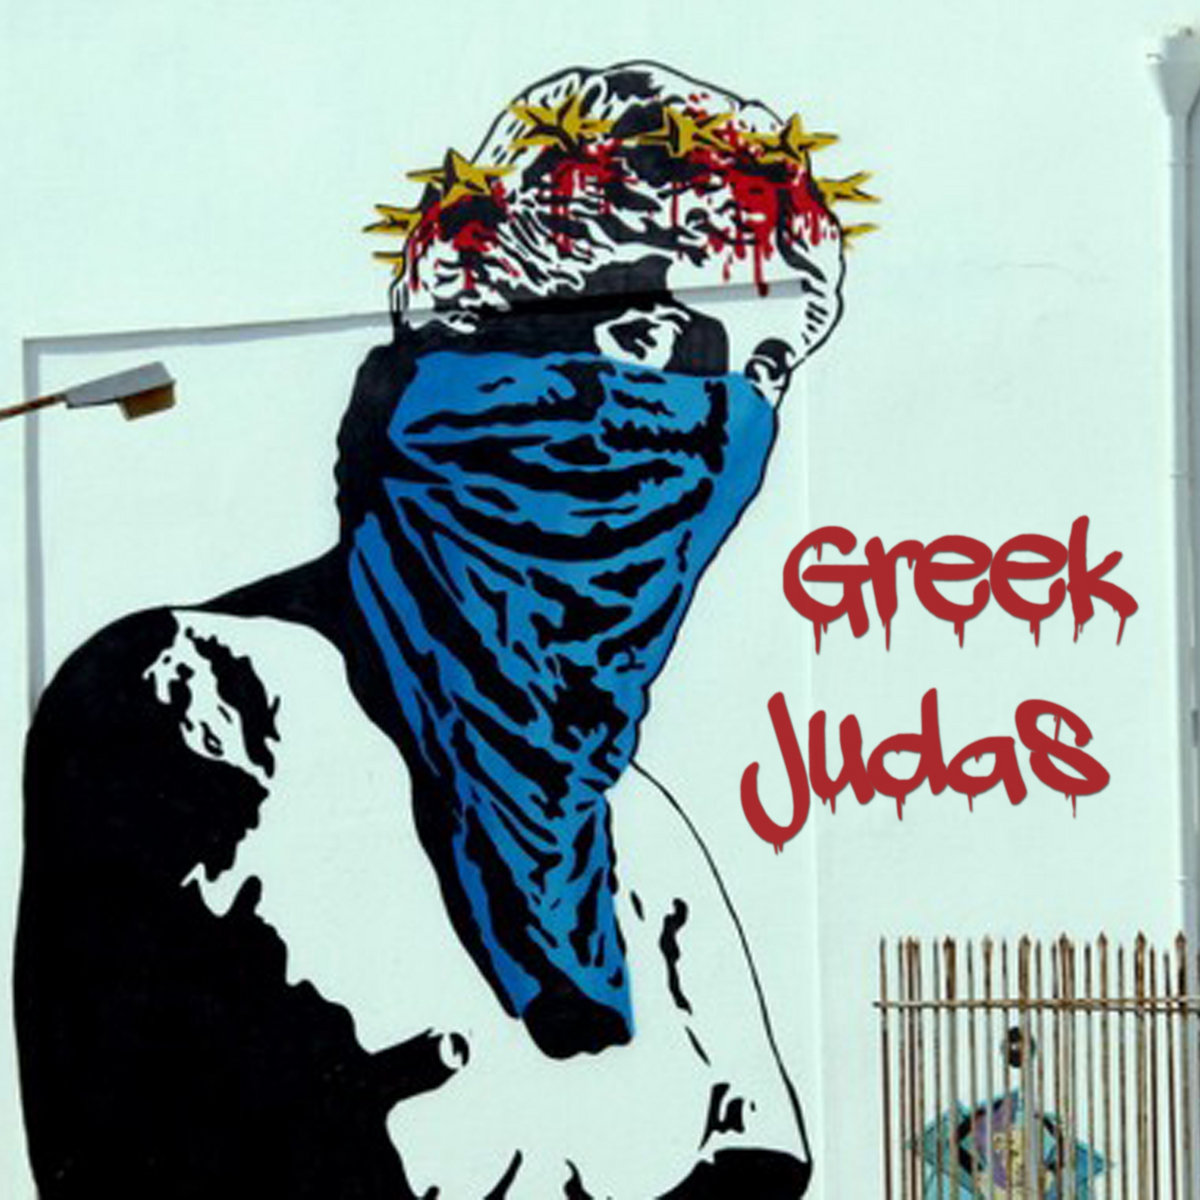 Greek Judas | Greek Judas